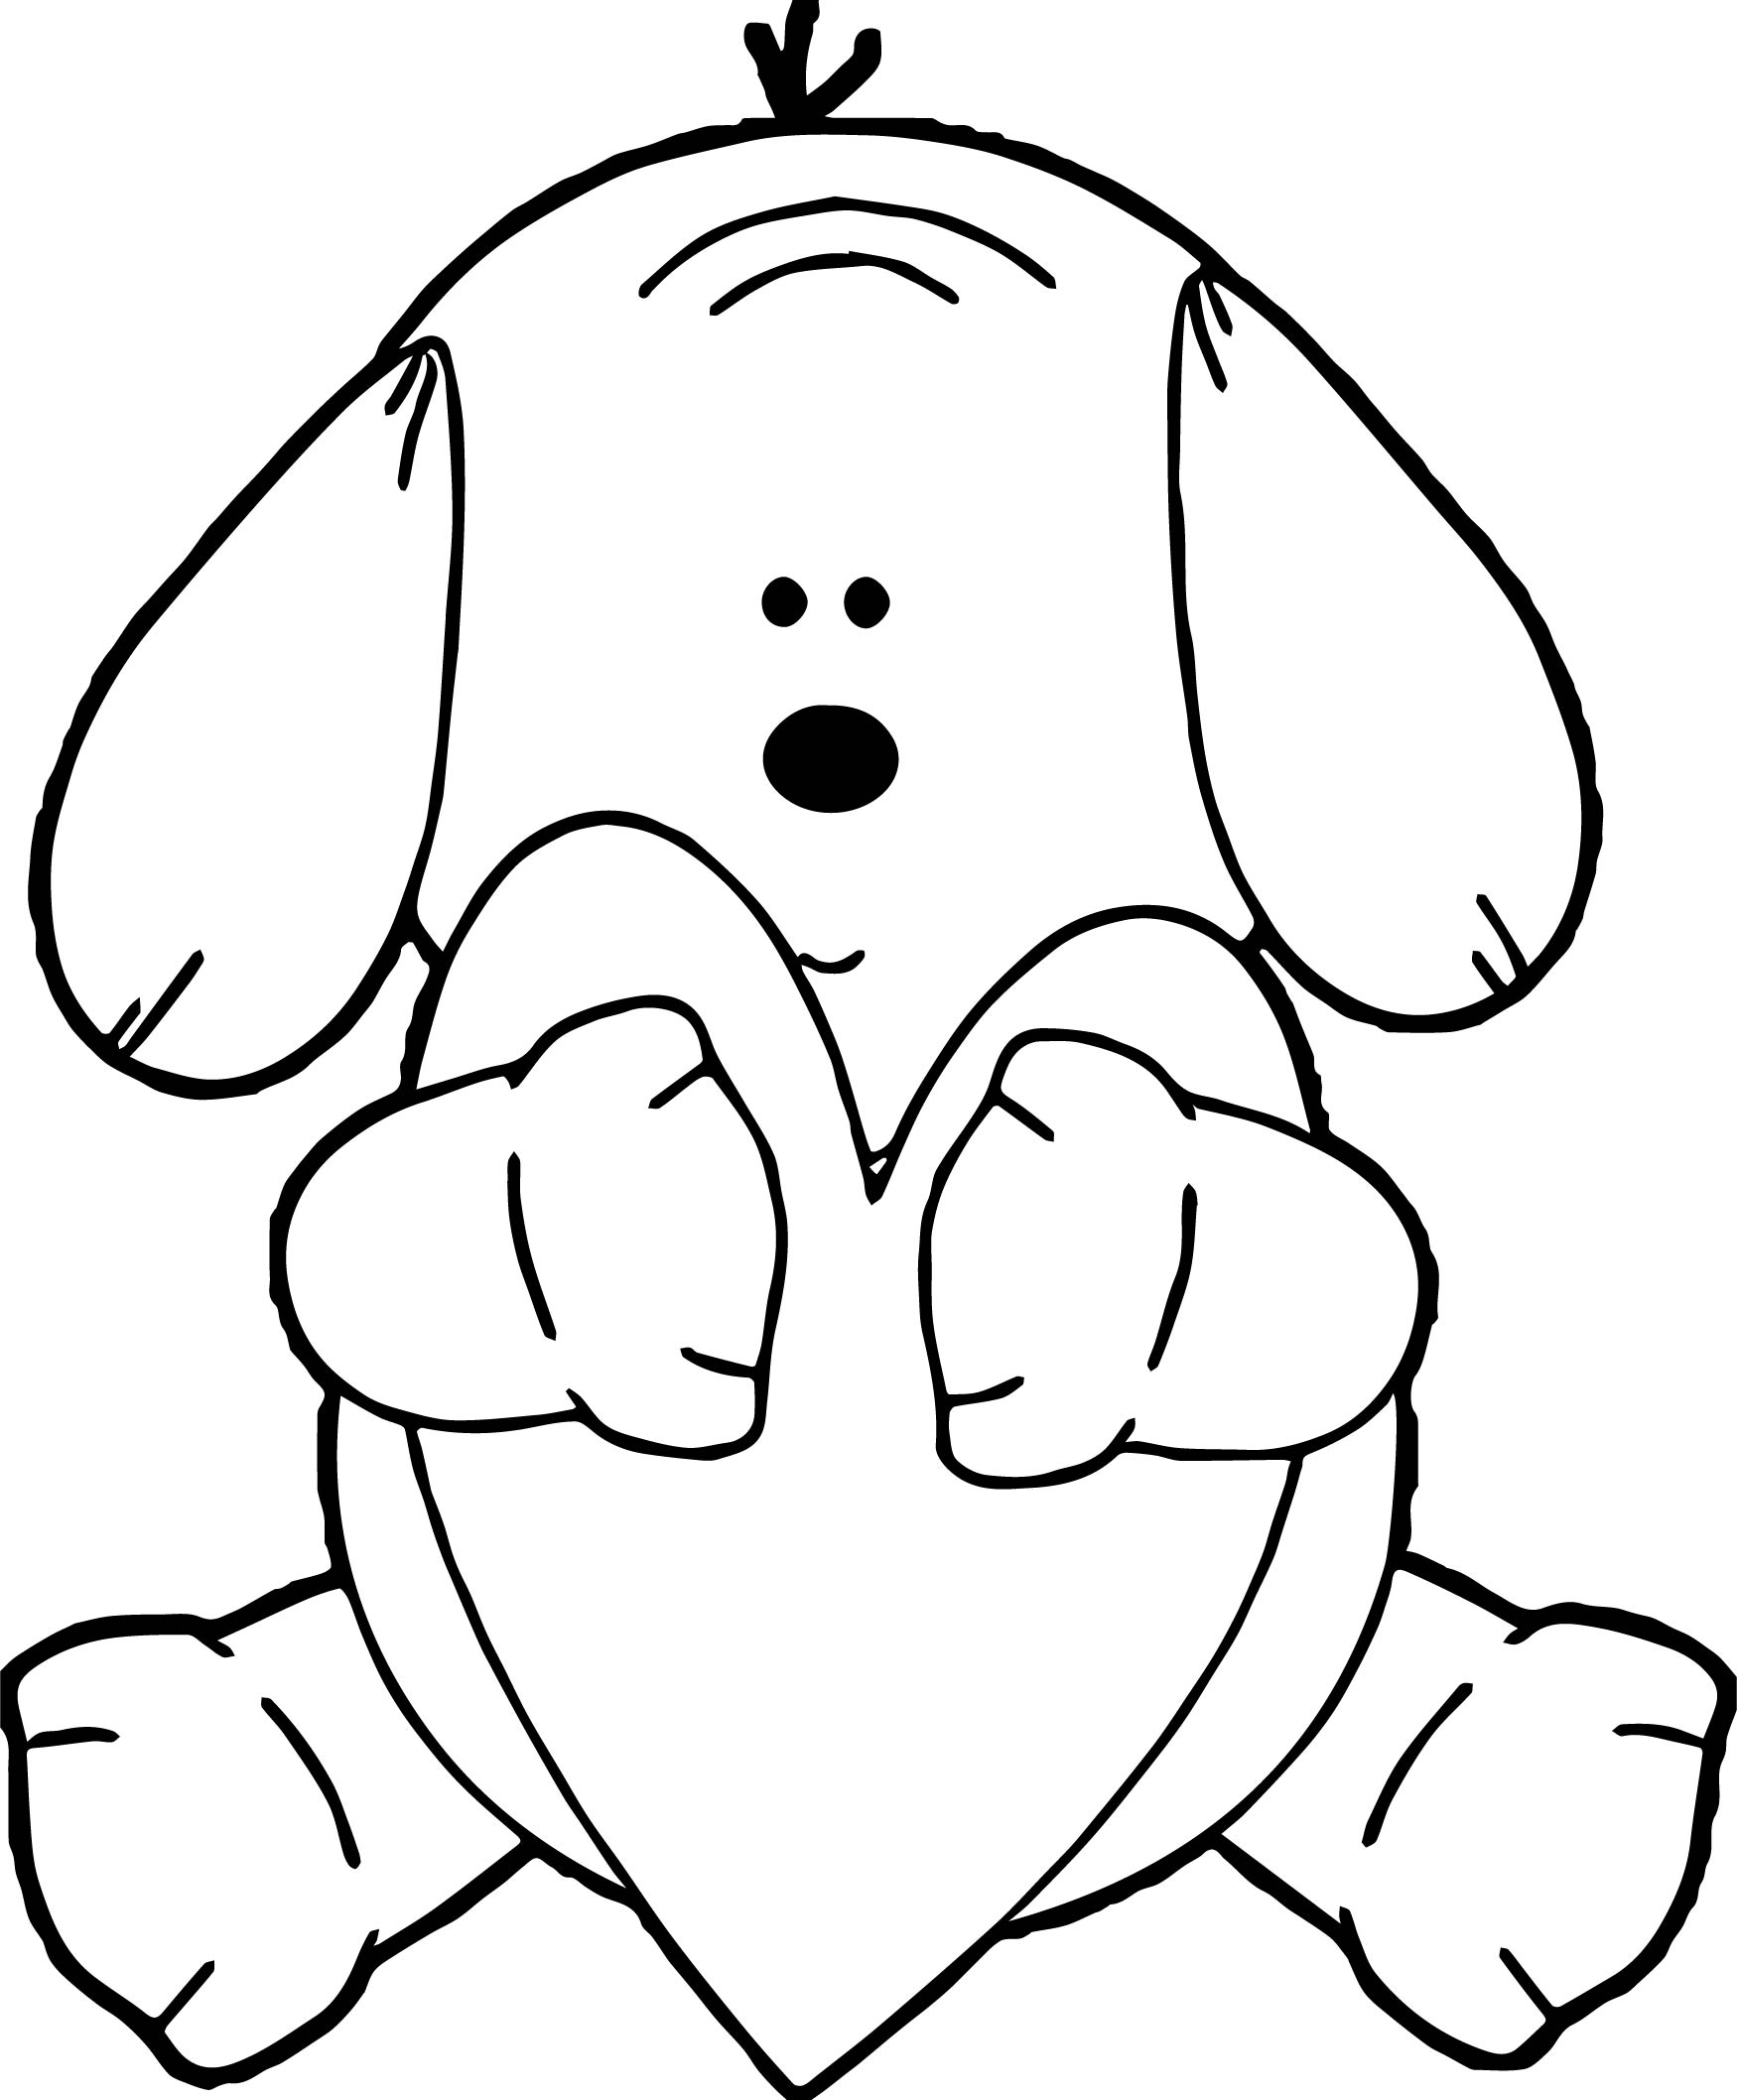 coloring page of a puppy - puppy hugging heart dog puppy coloring page